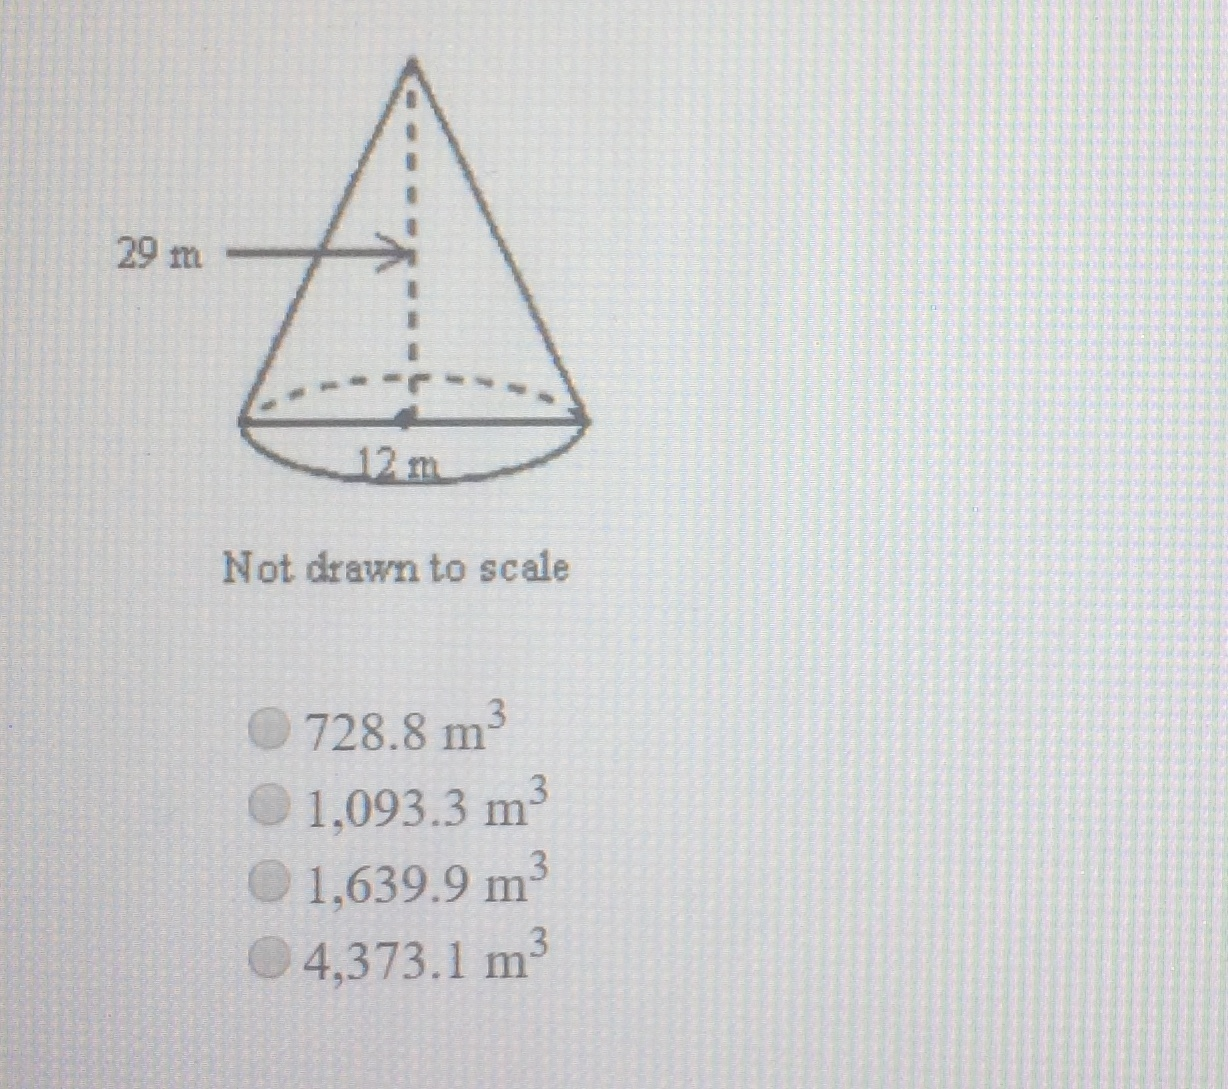 Find The Volume Of The Cone Shown As A Decimal Rounded To